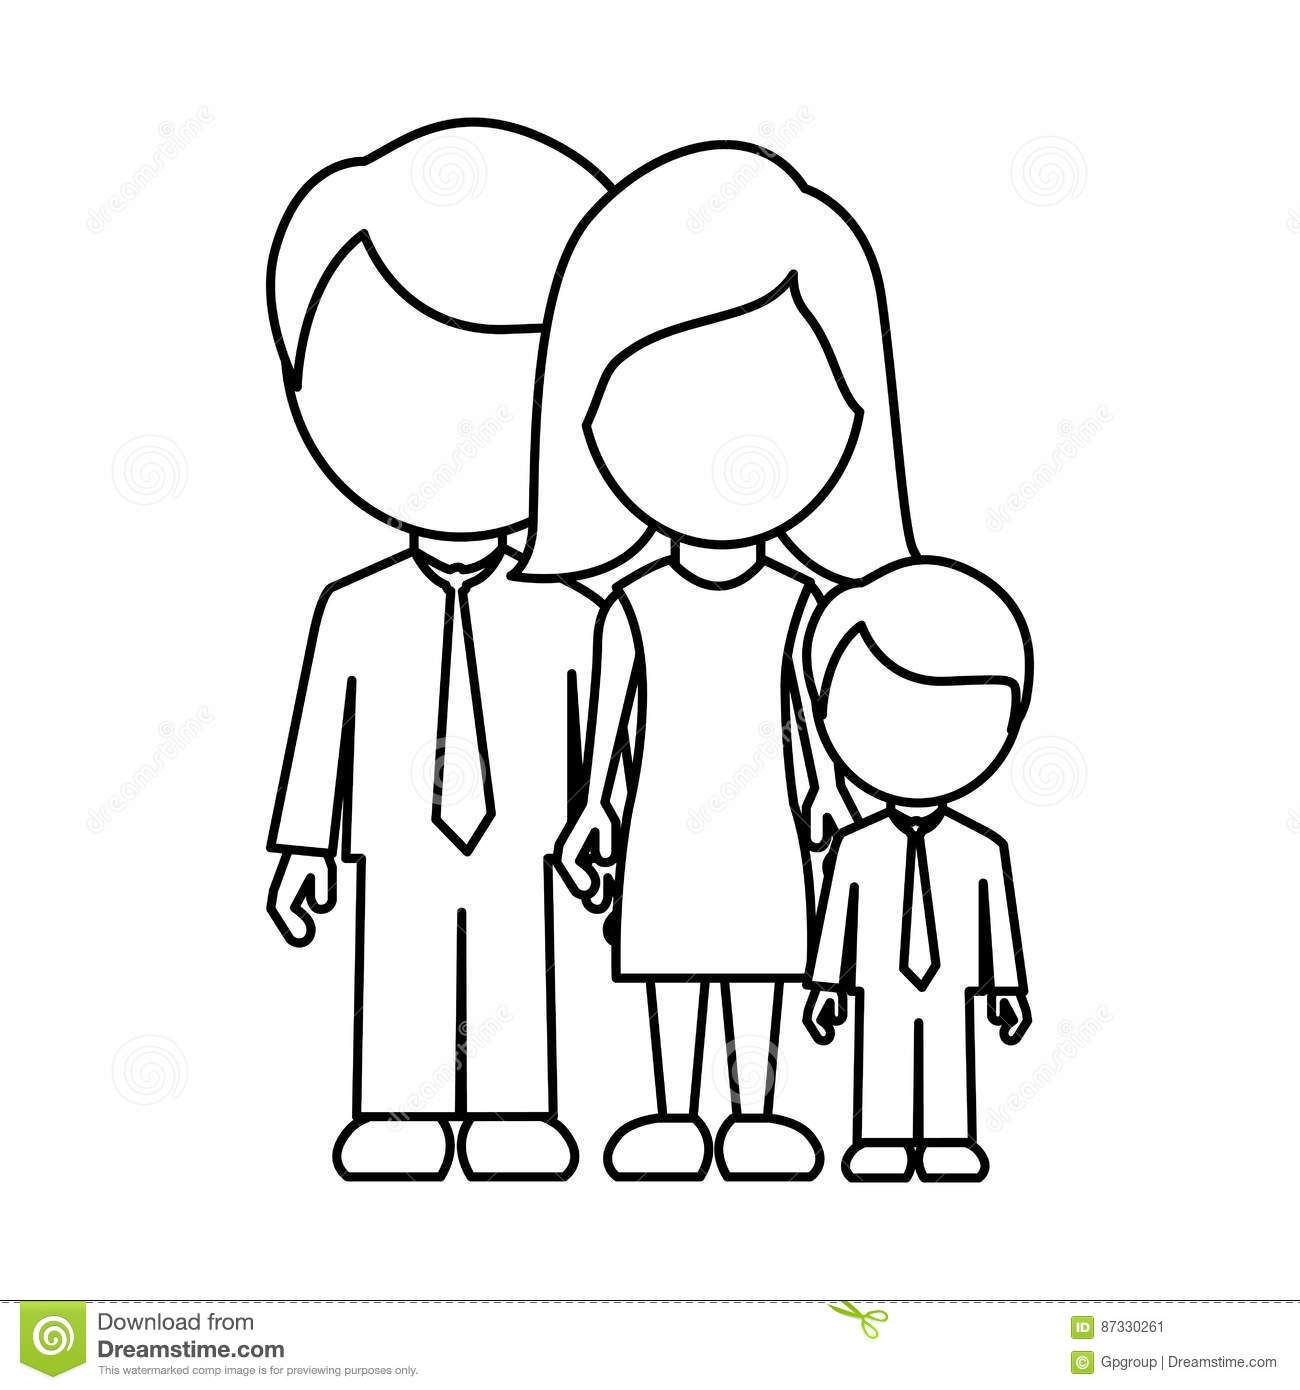 Monochrome Contour Faceless With Dad Mom And Son In Formal